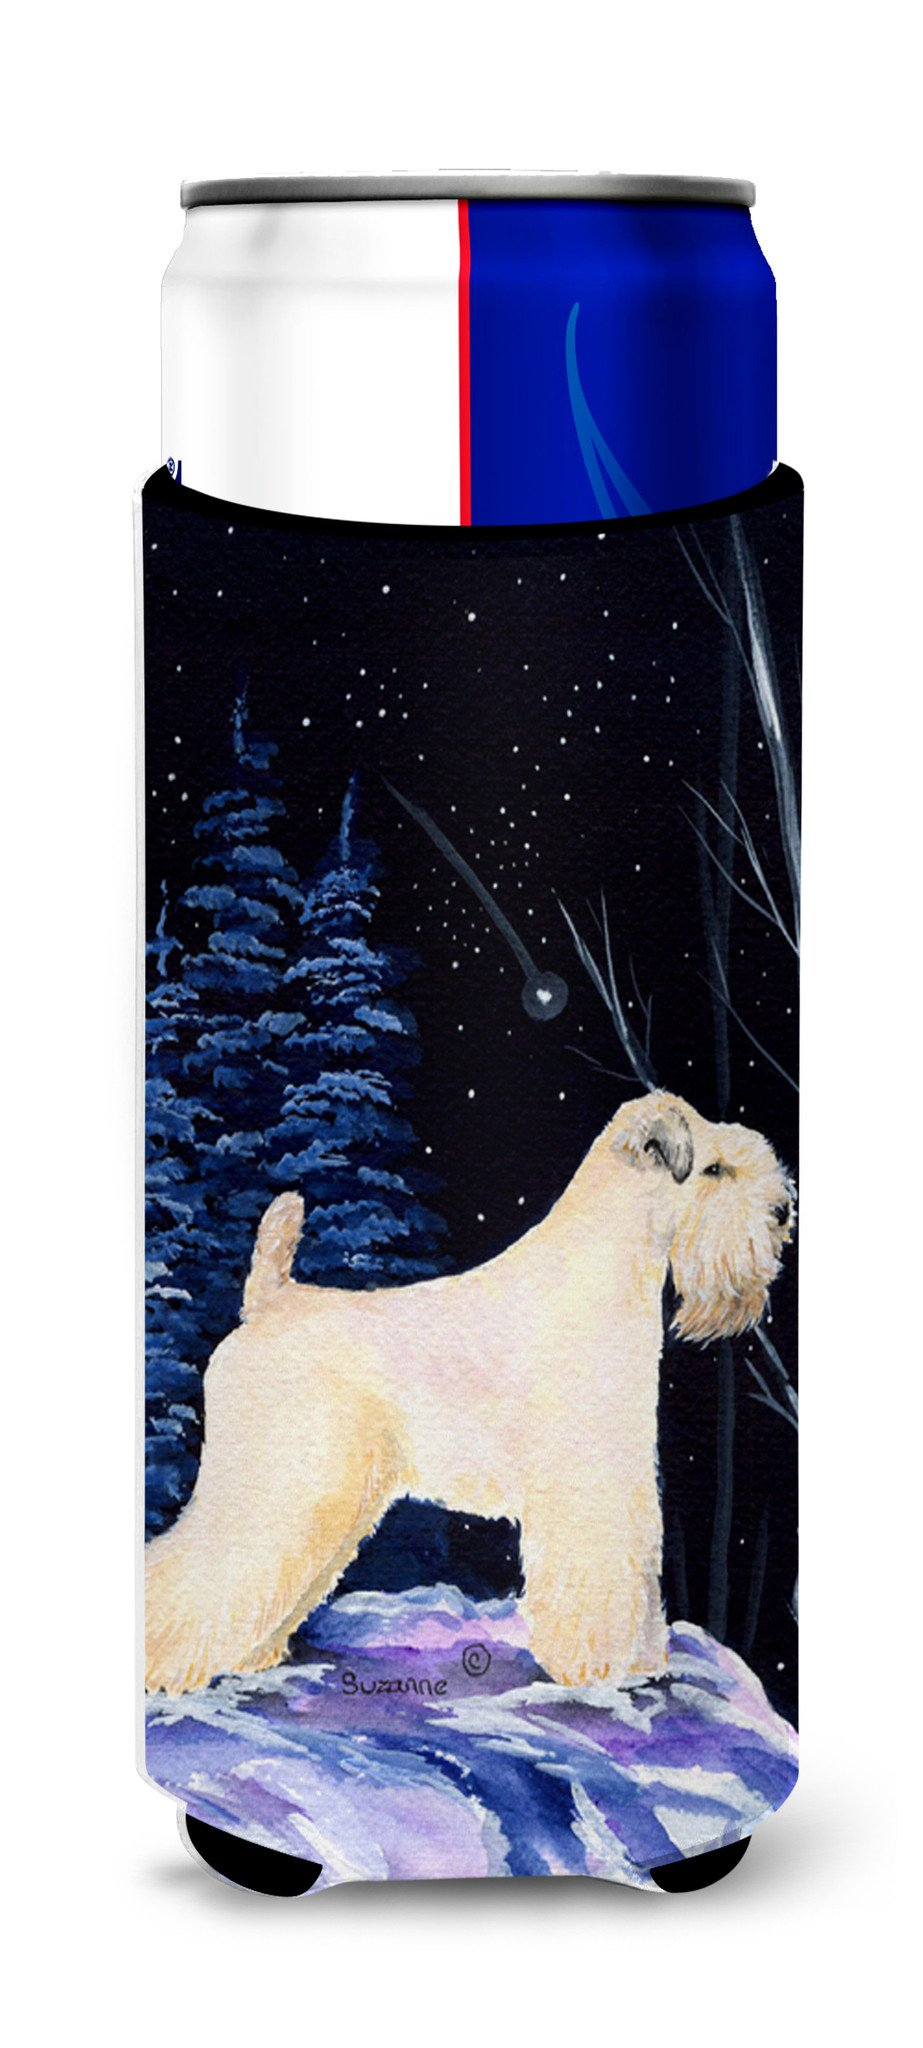 Starry Night Wheaten Terrier Soft Coated Ultra Beverage Insulators for slim cans SS8386MUK by Caroline's Treasures